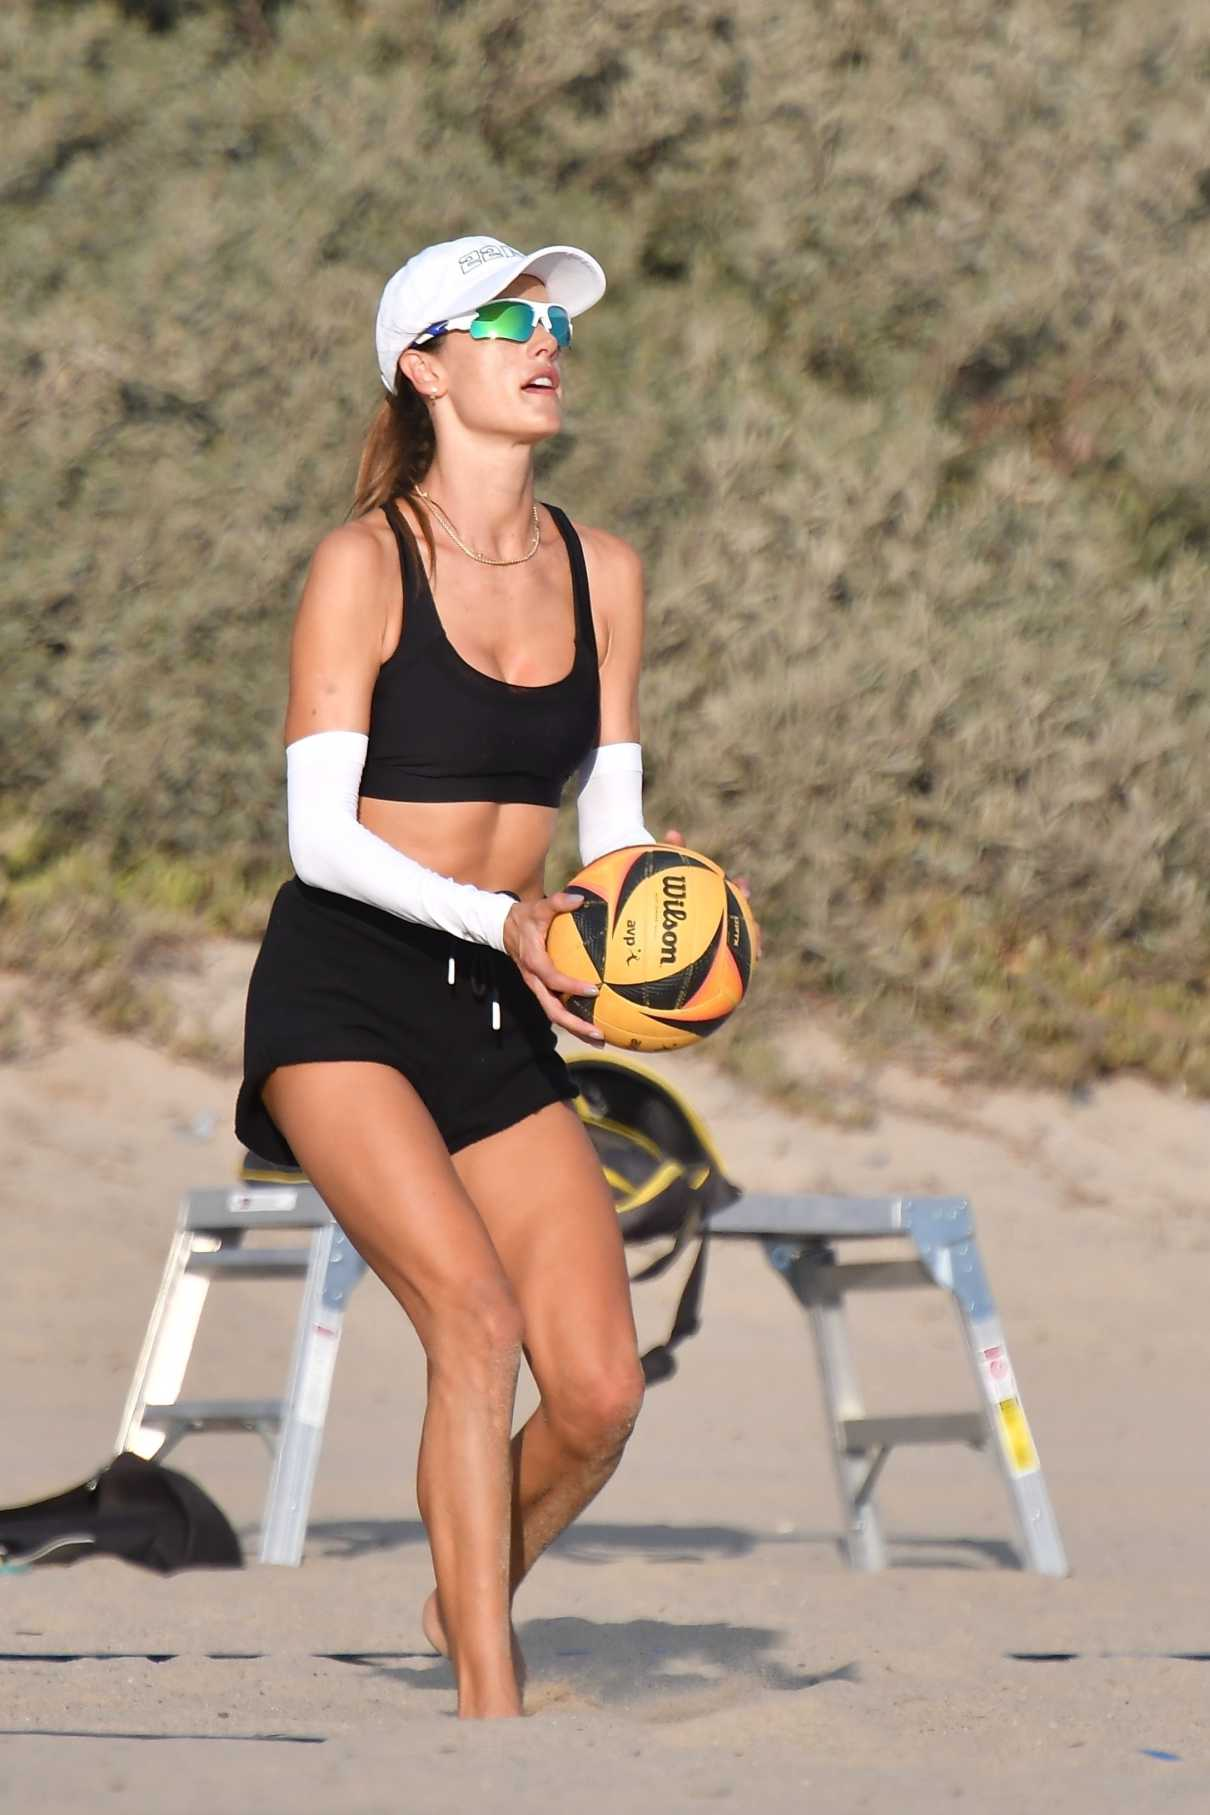 Alessandra Ambrosio in a Black Sports Bra